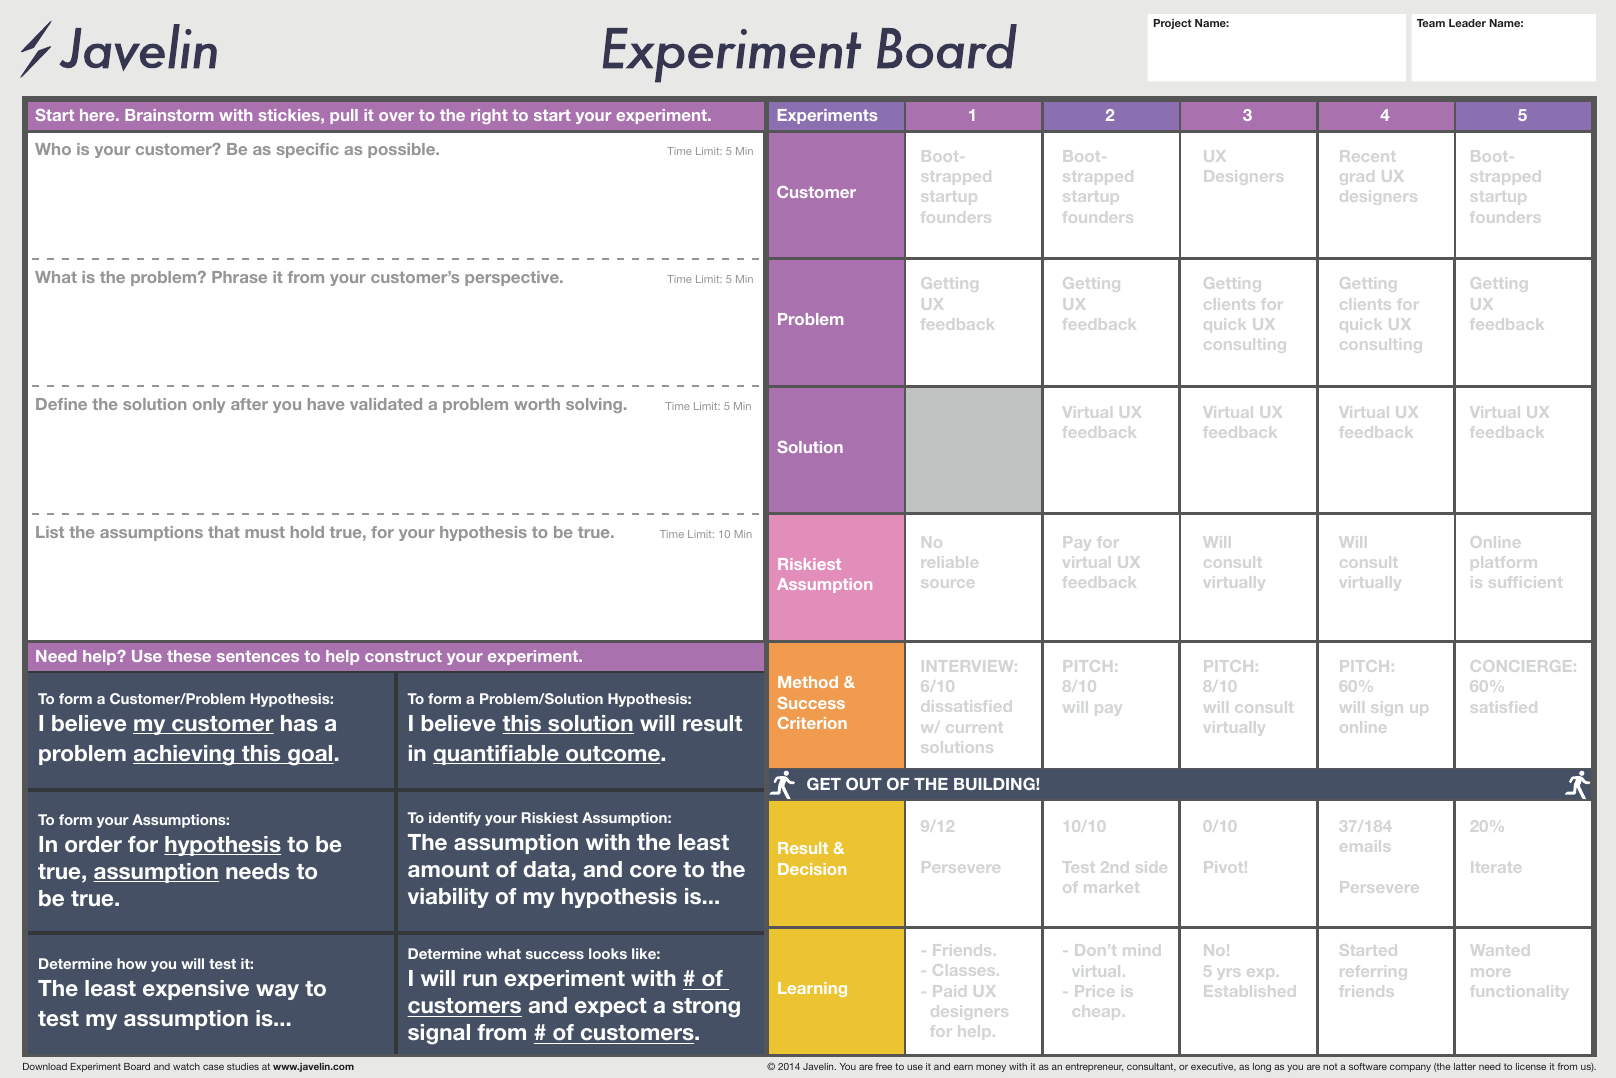 Javelin Experiment Board by Trevor Owens and Grace Ng